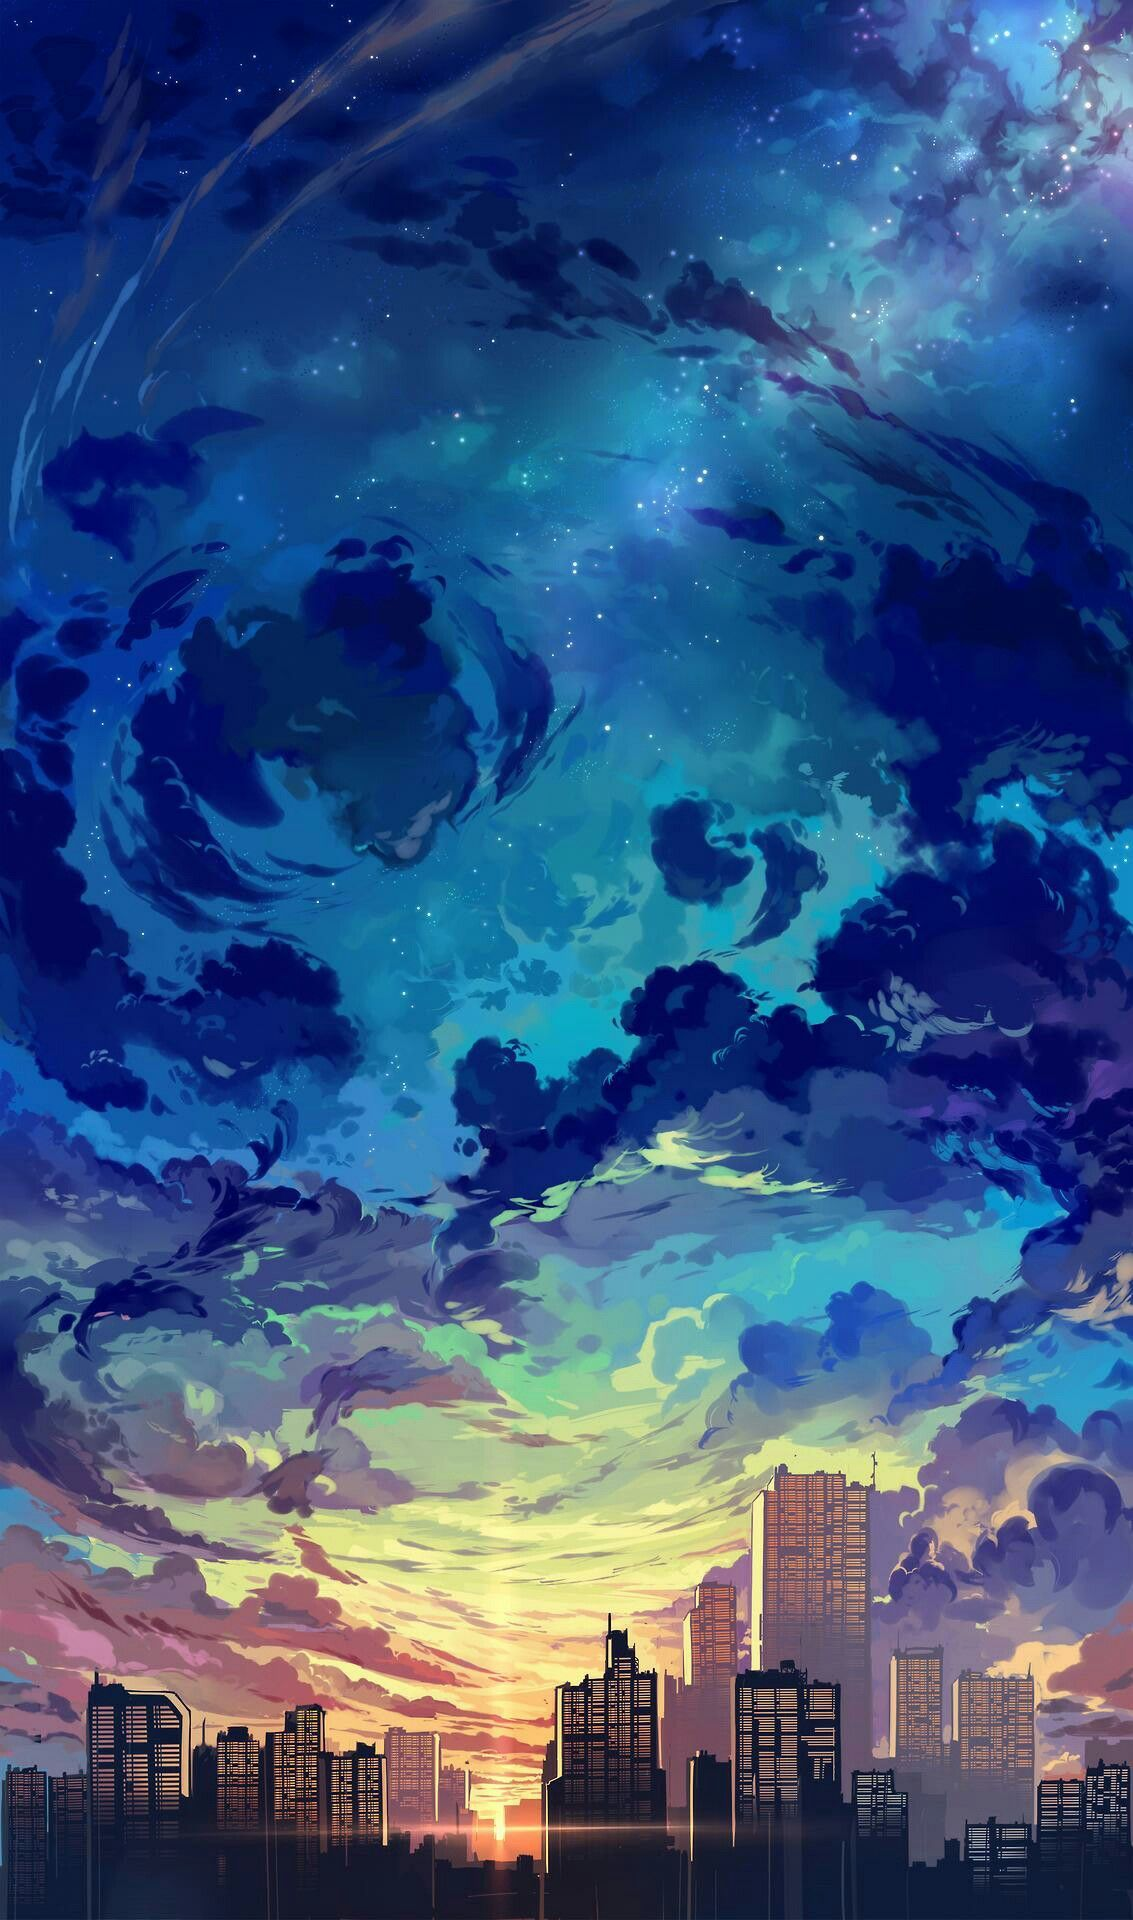 Anime Skyline : anime, skyline, Anime, Skyline, Wallpapers, Backgrounds, WallpaperAccess